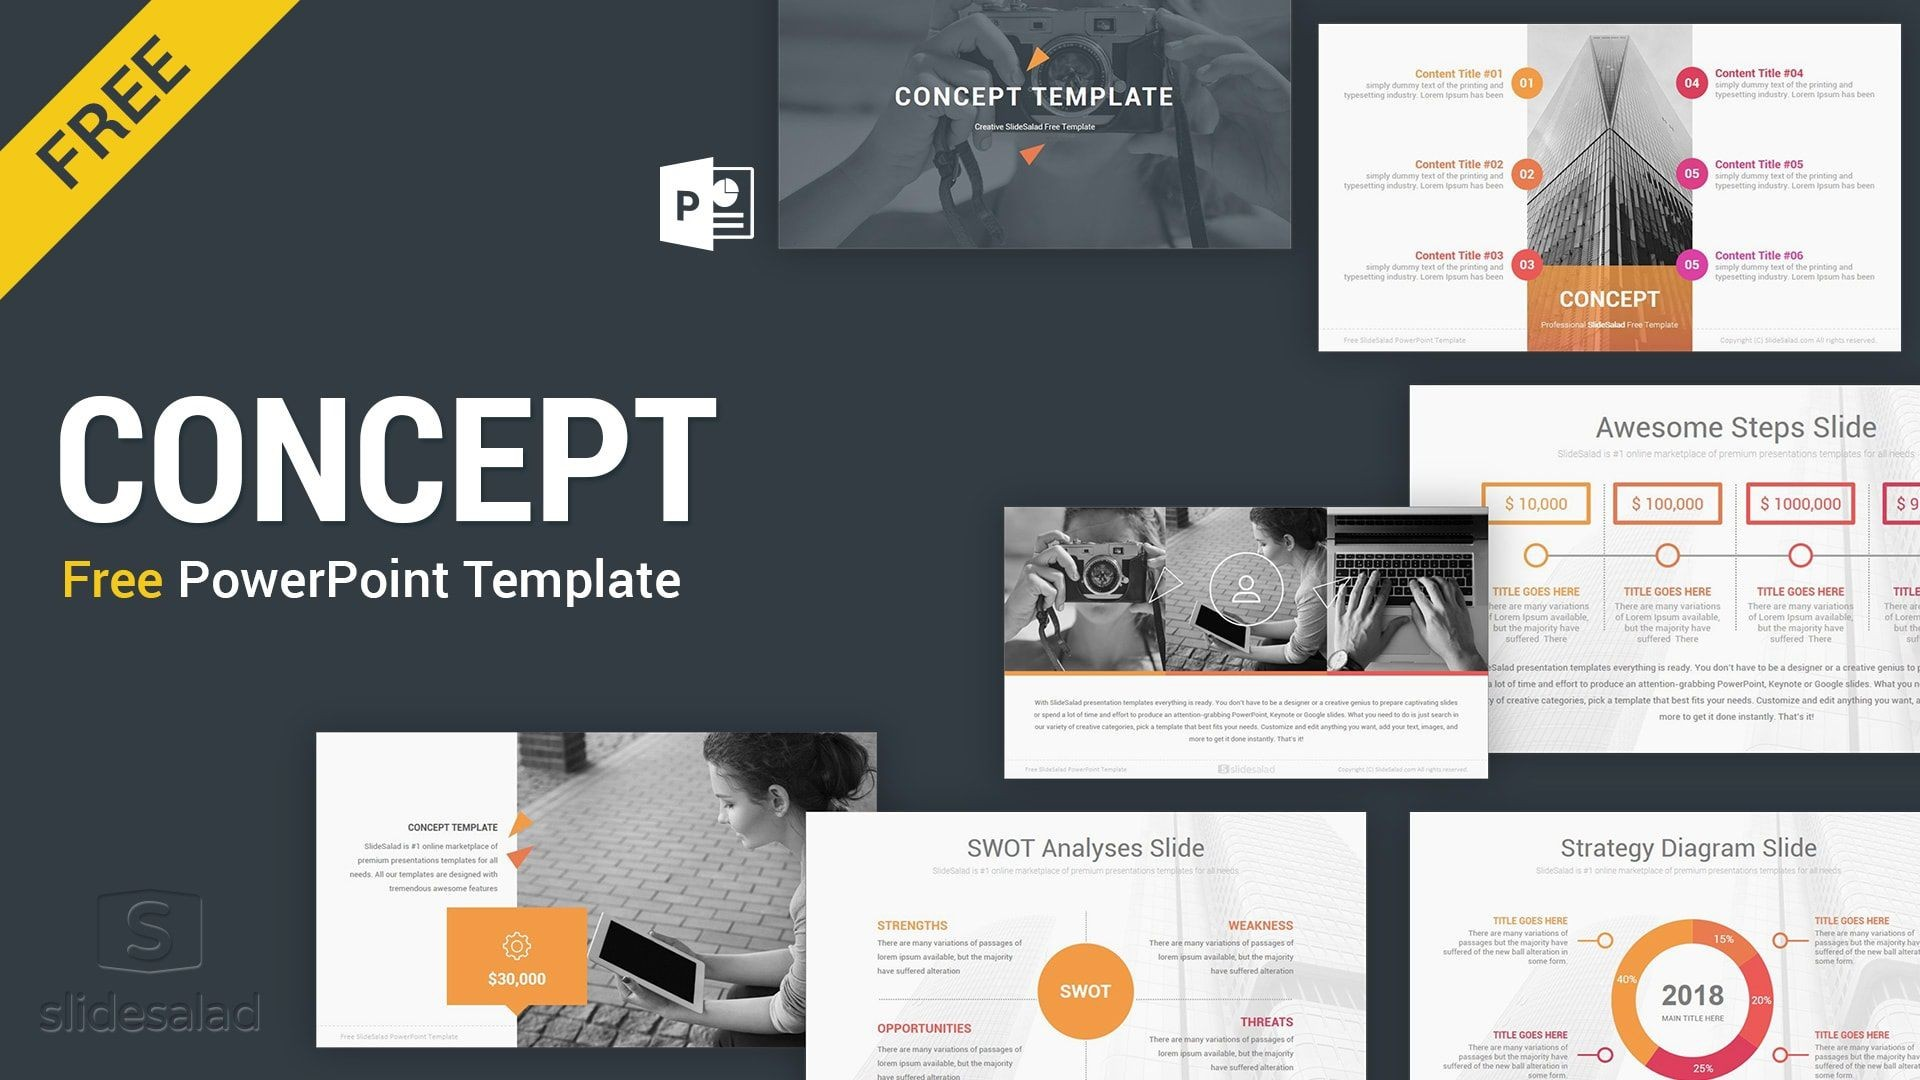 004 Sensational Free Download Ppt Template For Technical Presentation Inspiration  Simple Project Sample1920